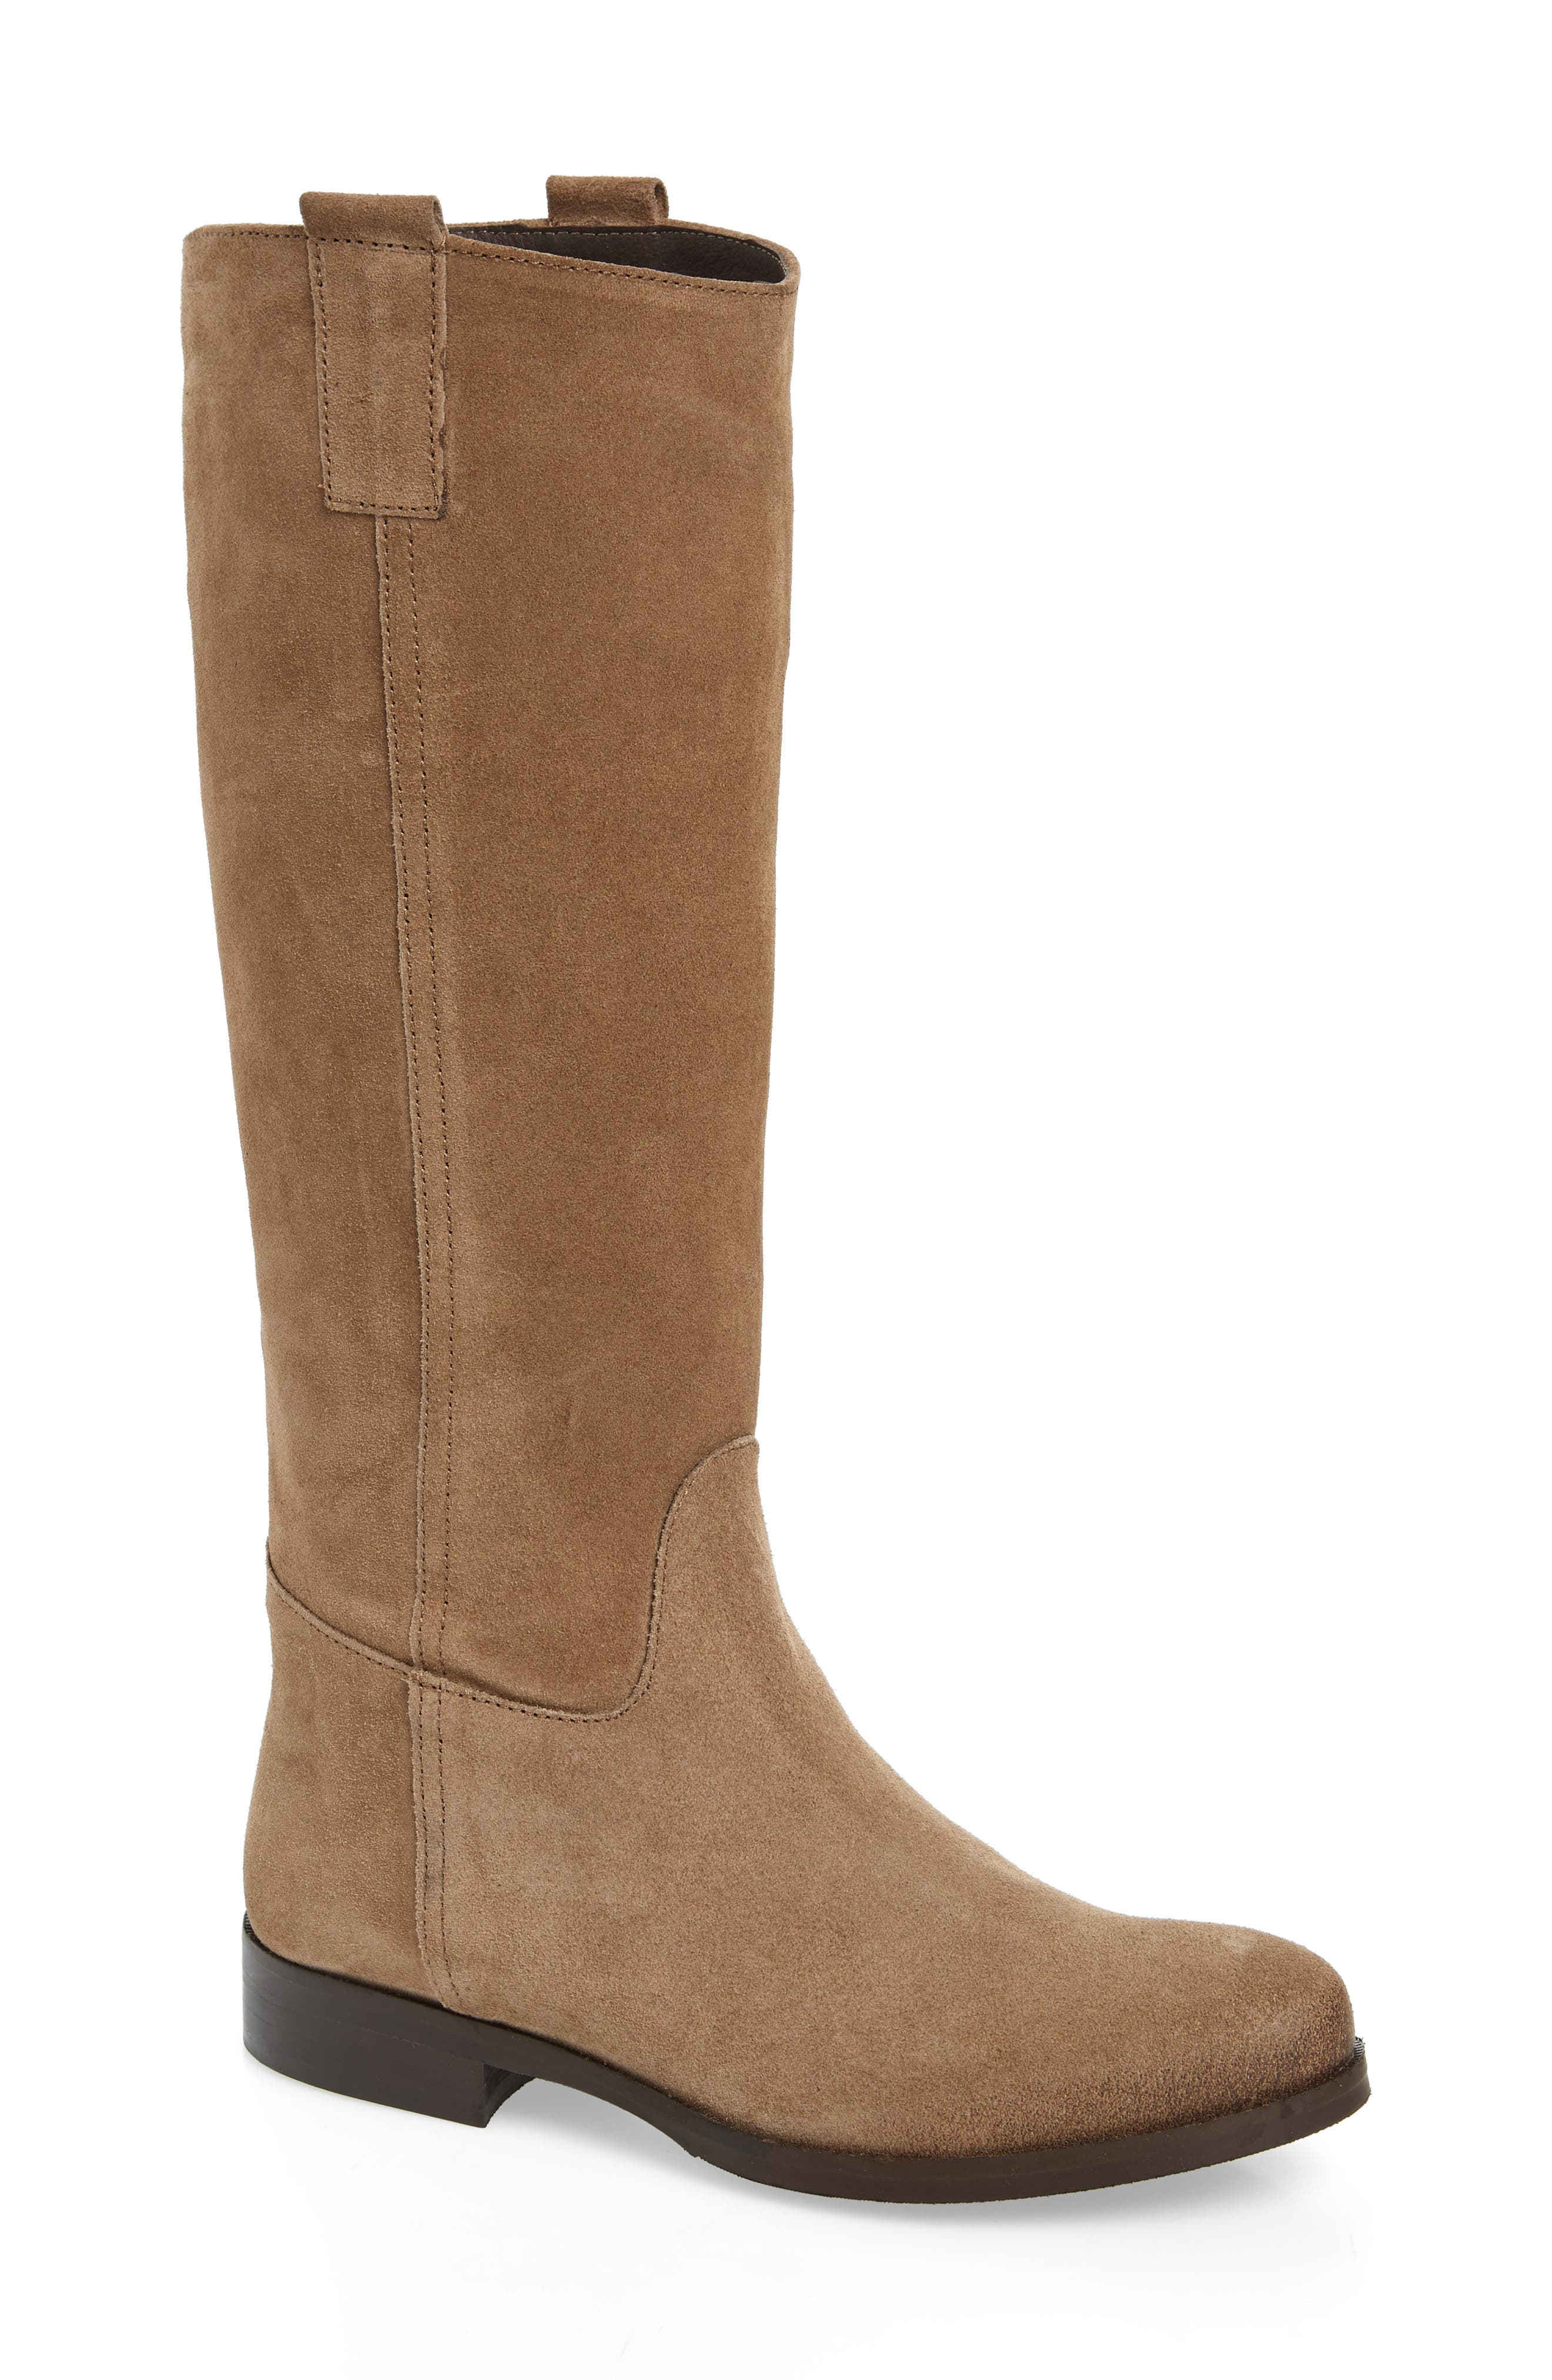 Cordani Benji Knee High Boot - Brown